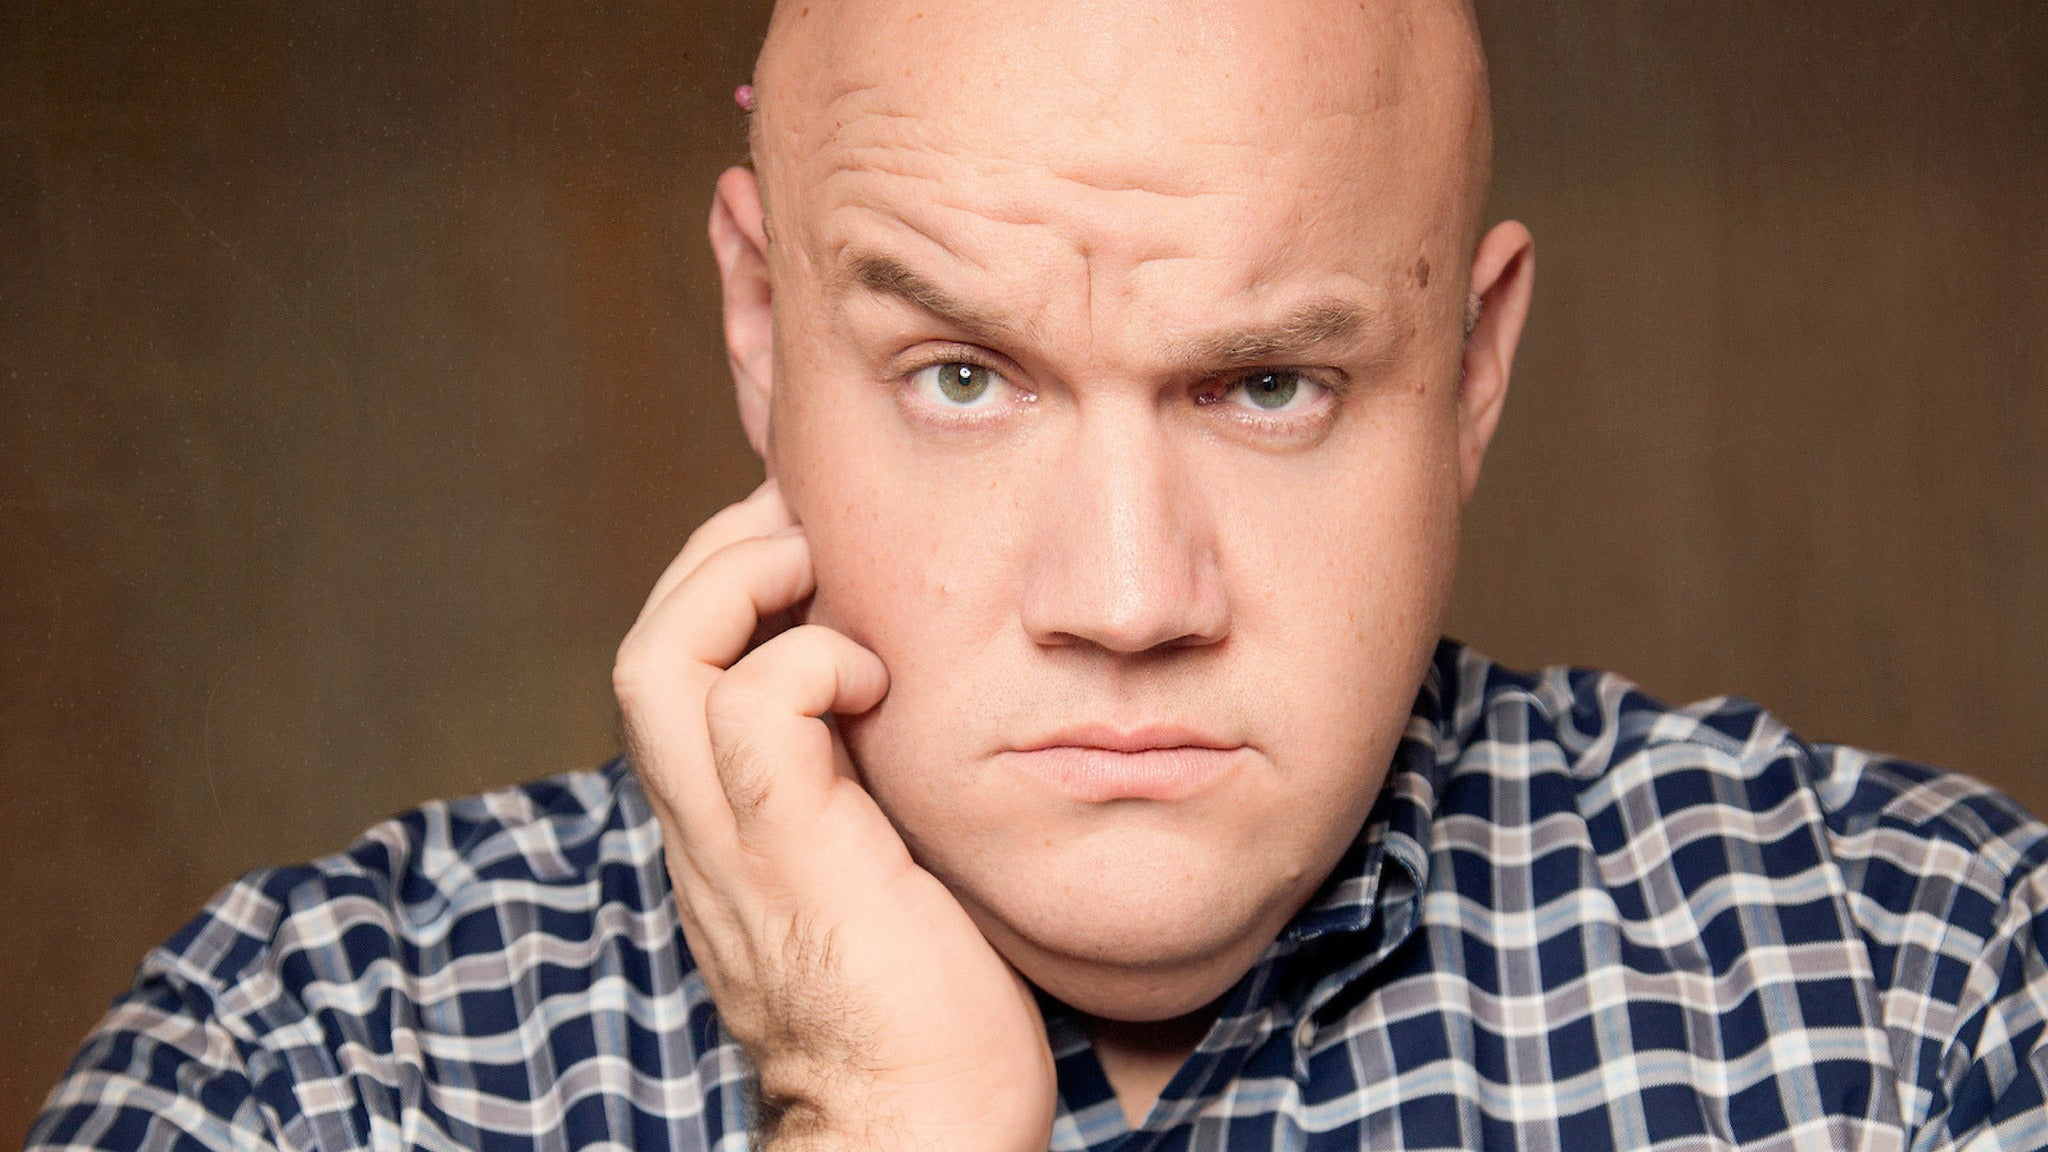 Guy Branum at Punch Line Comedy Club - San Francisco - San Francisco, CA 94111